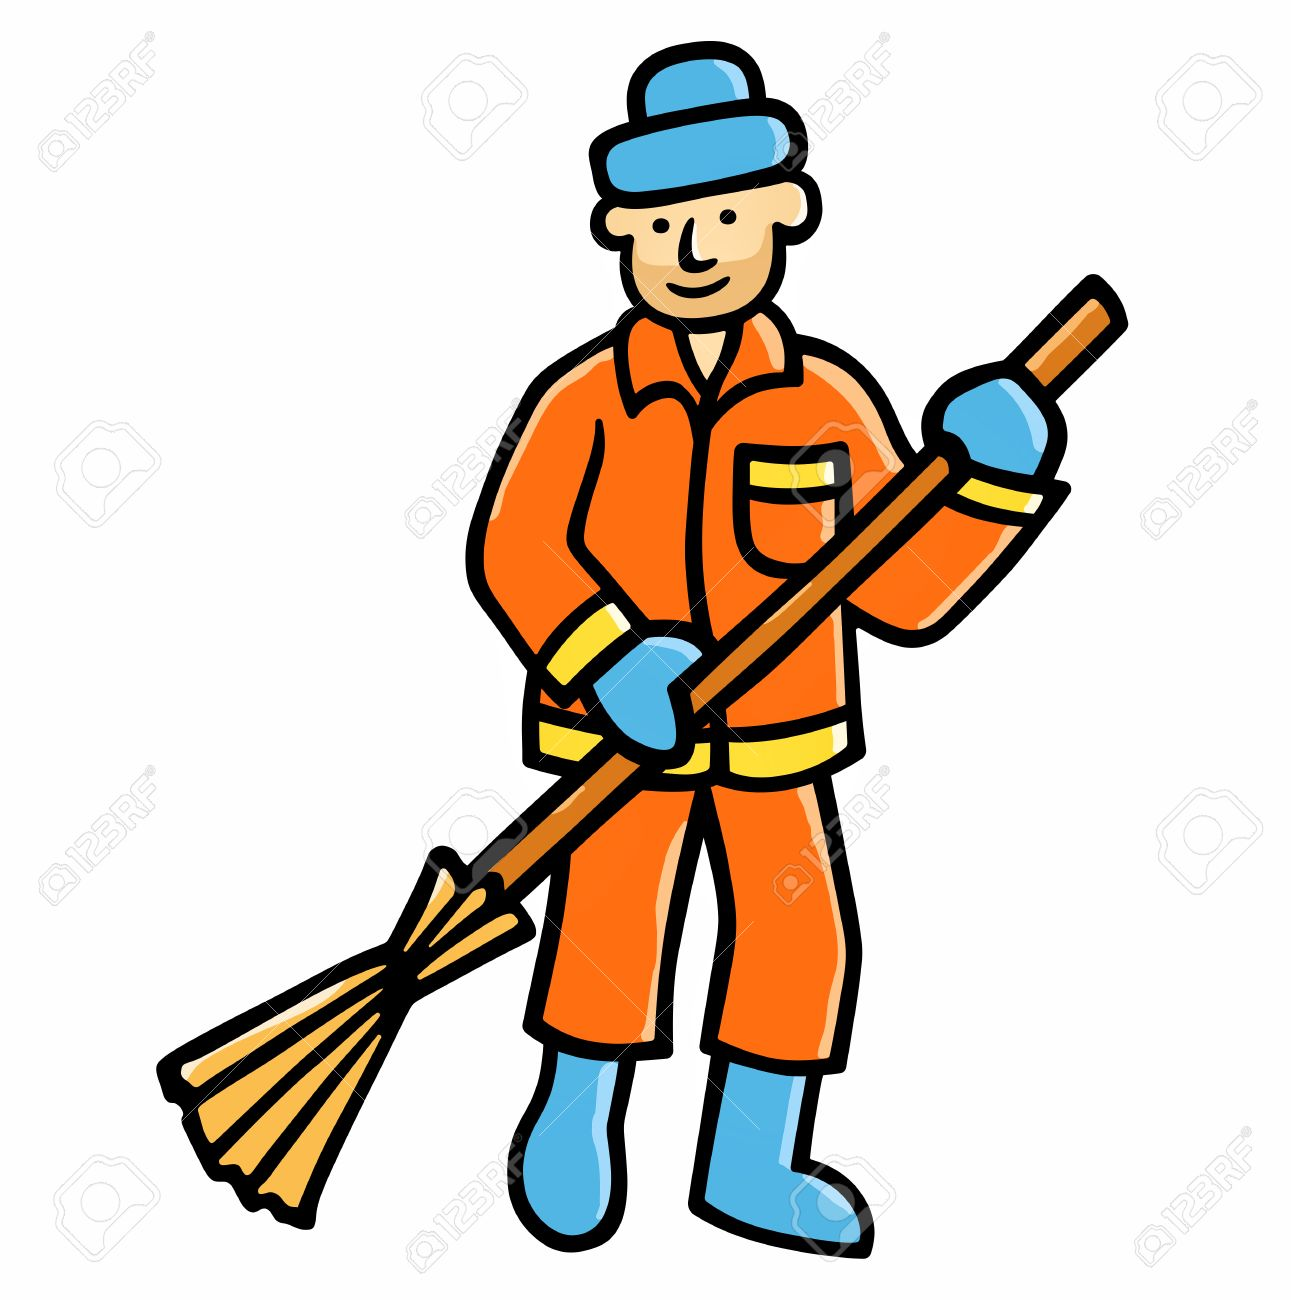 Sweeper clipart banner free library Street sweeper clipart 11 » Clipart Station banner free library